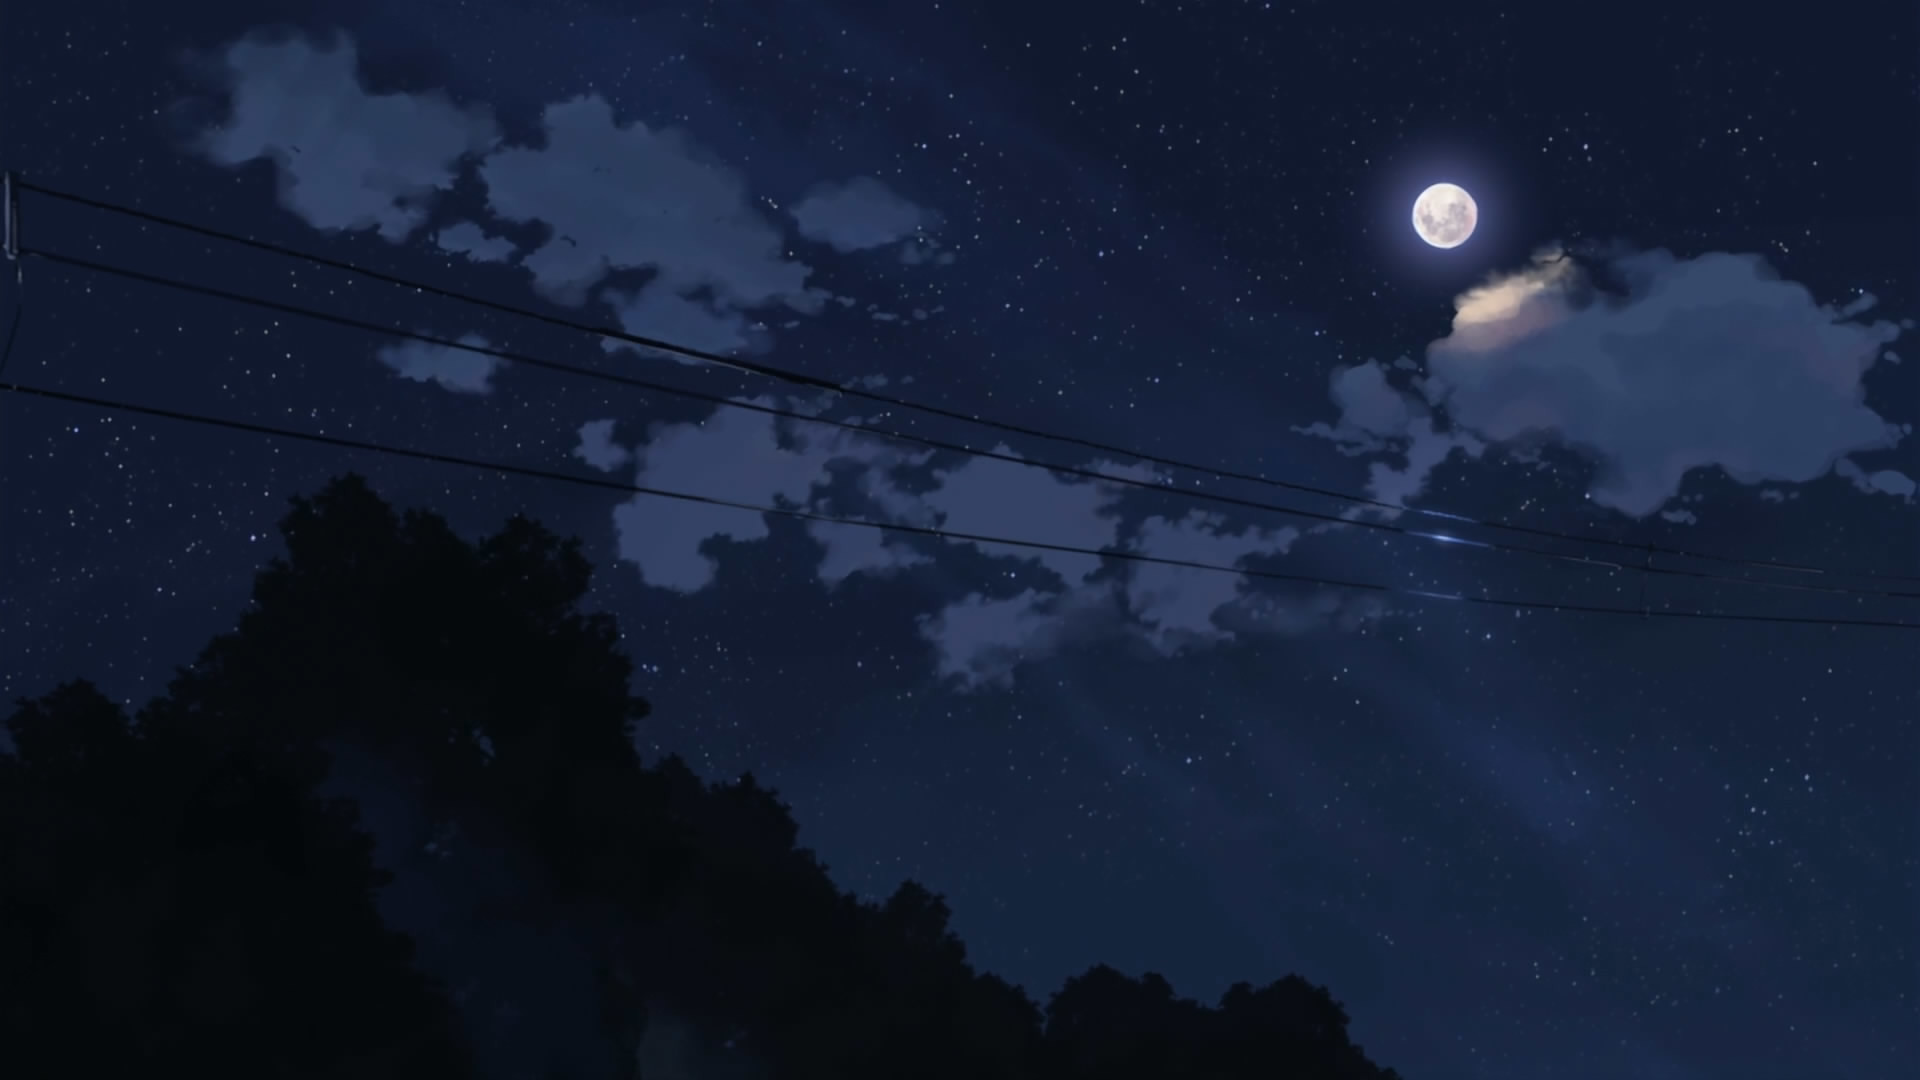 1920x1080 Anime Night Sky Background Download anime night sky wallpaper 5776 #7045